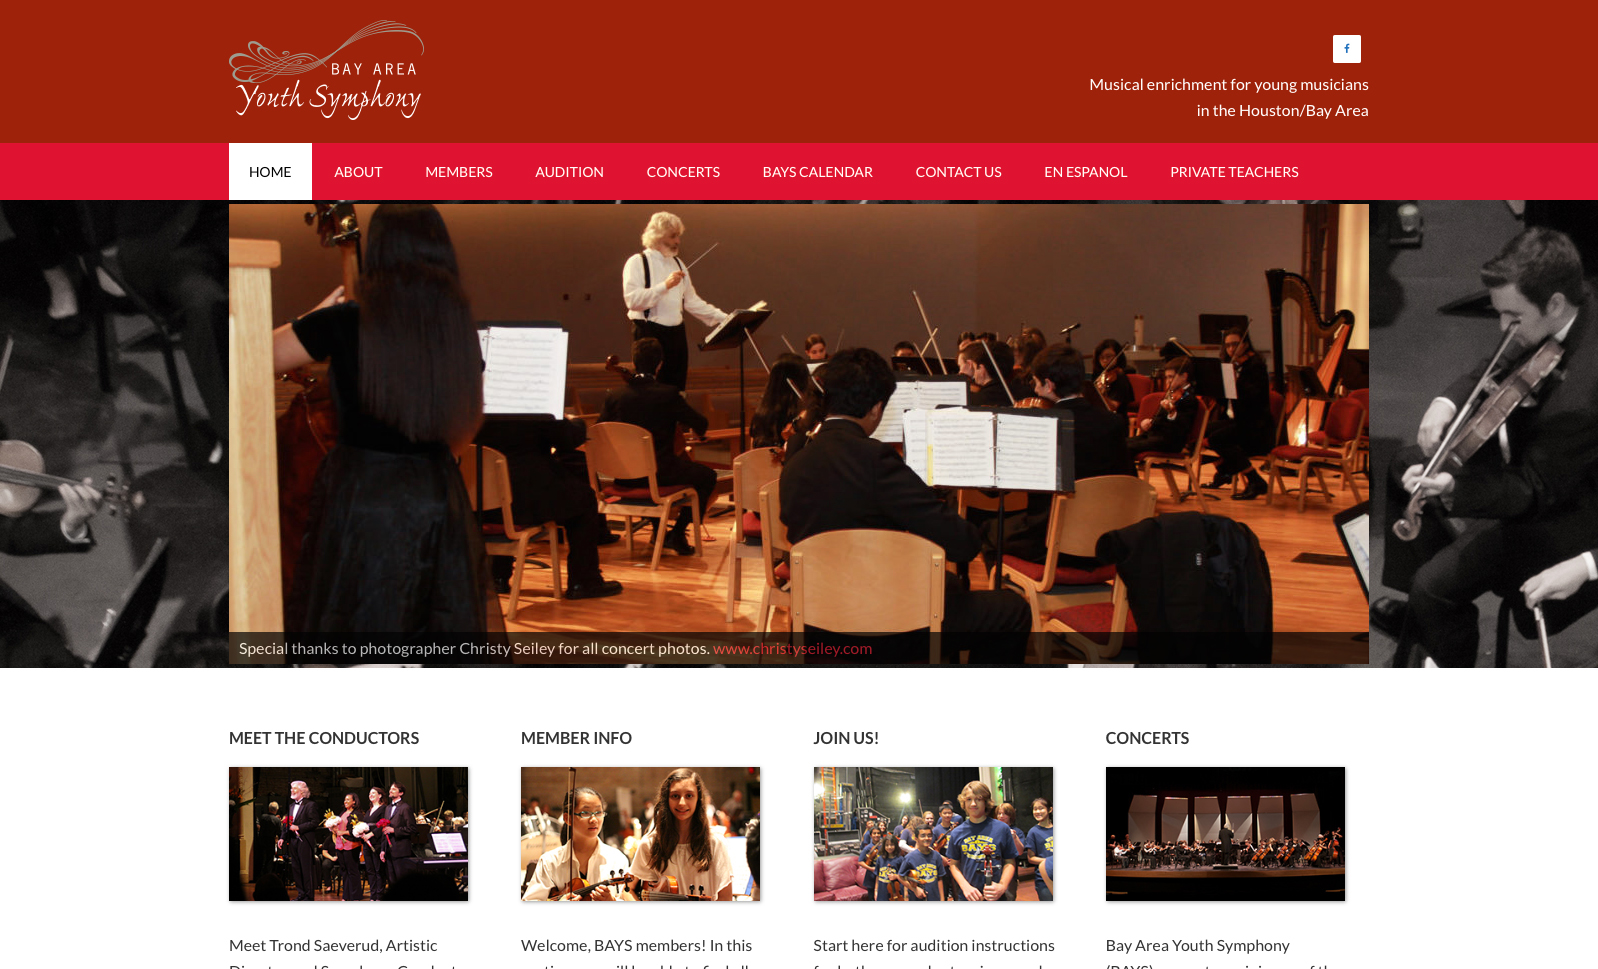 Bay Area Youth Symphony web site